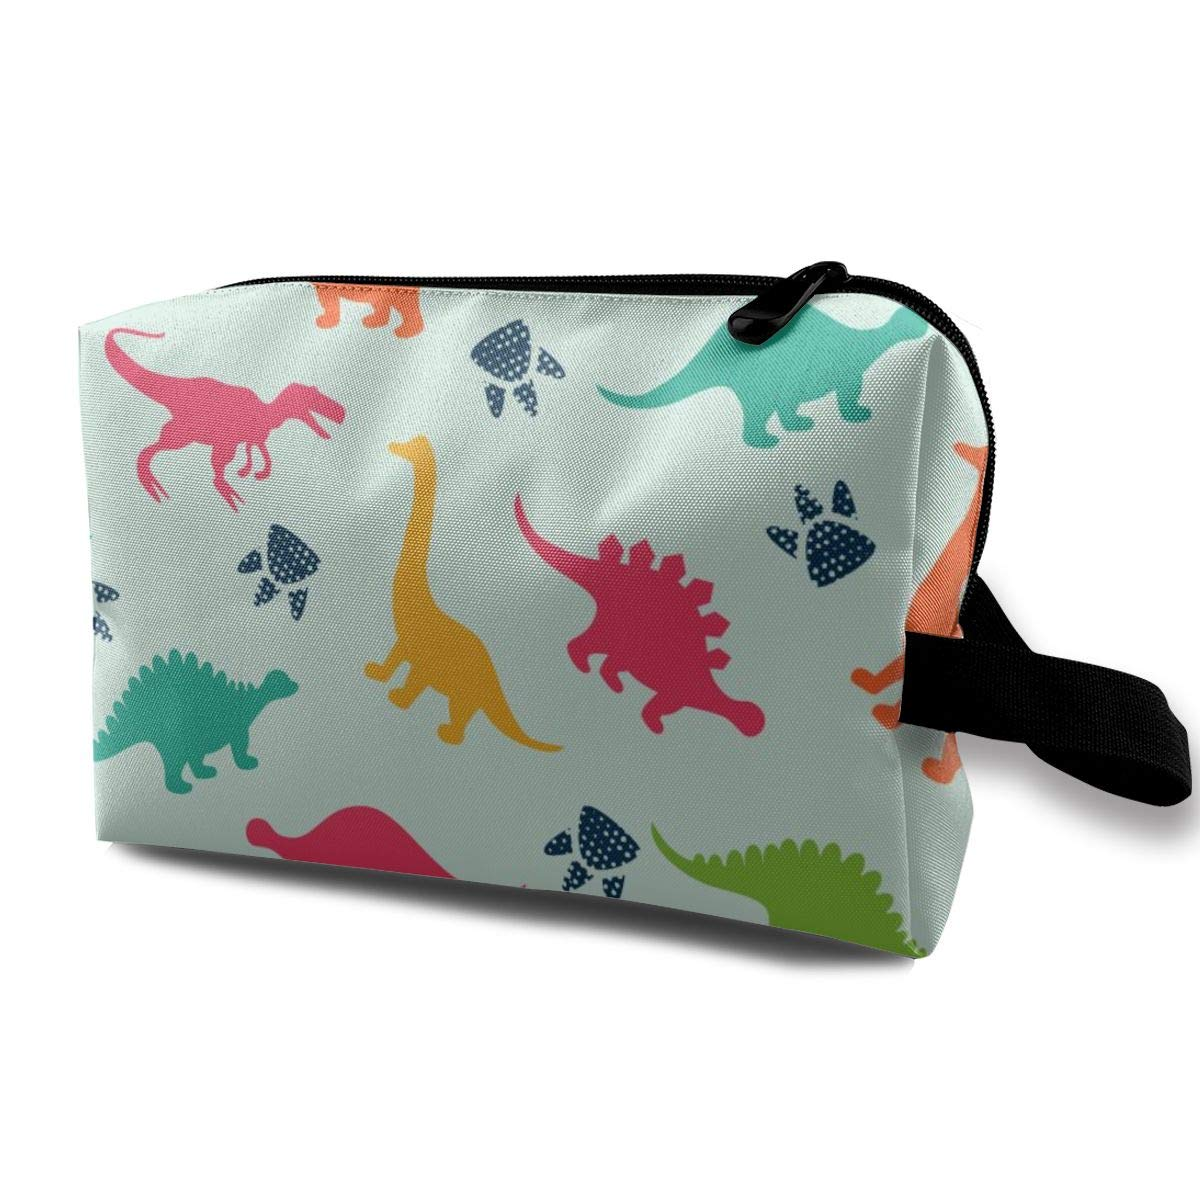 Colorful Cartoon Dinosaurs Abstract Portable and Waterproof Cosmetic Bag Purse Travel Toiletry Bag Organizer Bag Pencil Case,for Cosmetic Lipstick Coin Jewelry Electronic Accessories